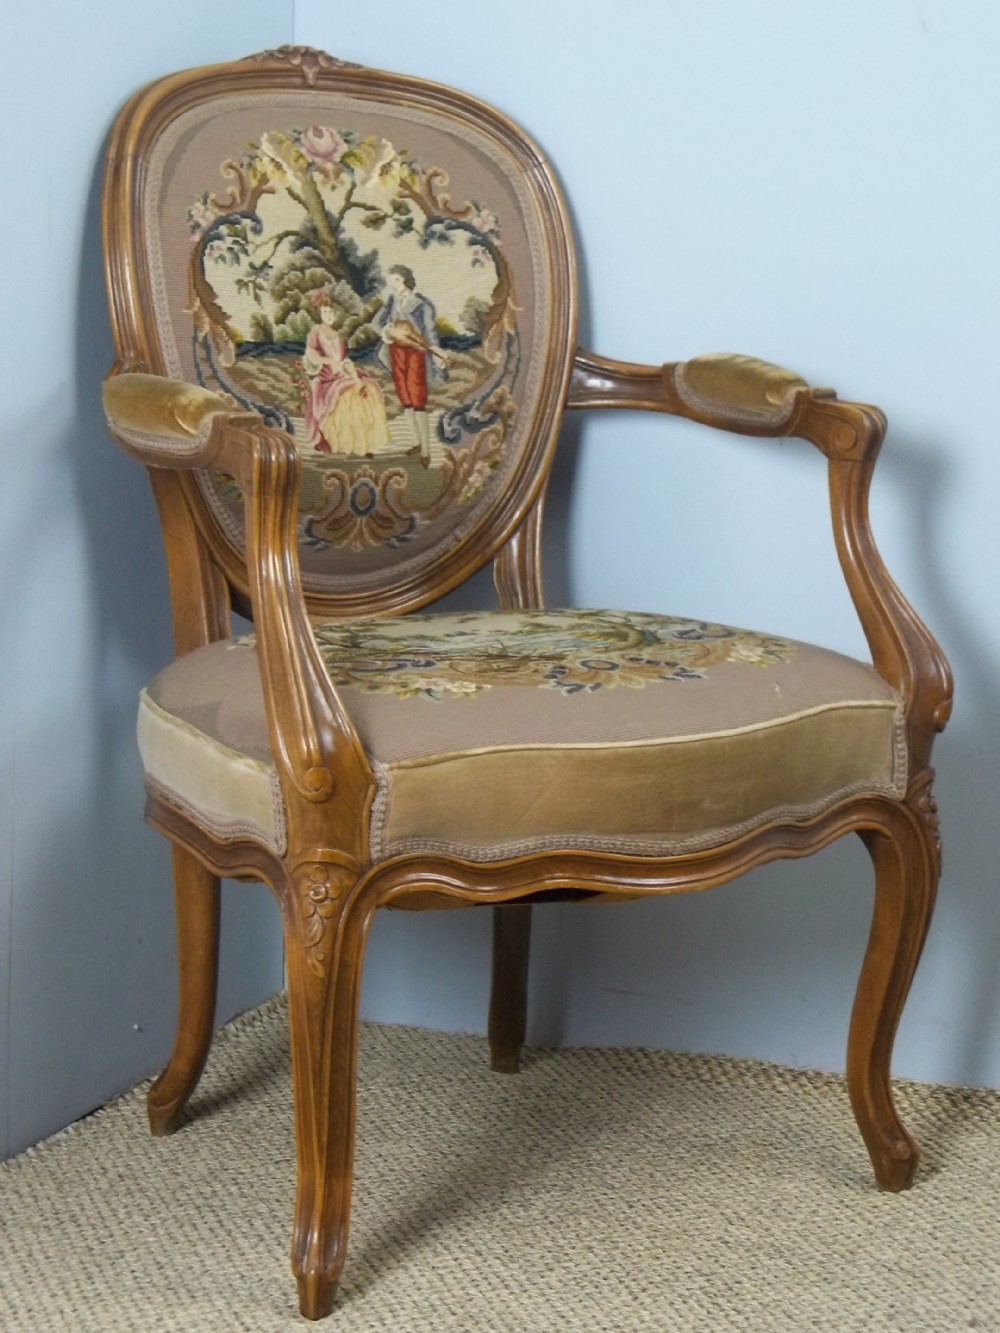 a fabulous quality french hand stitched needlepoint tapestry upholstered french louis xv design fauteuil walnut and beech framed salon cameo chair of easy tub reading library hall occasional open elbow armchair design c1900